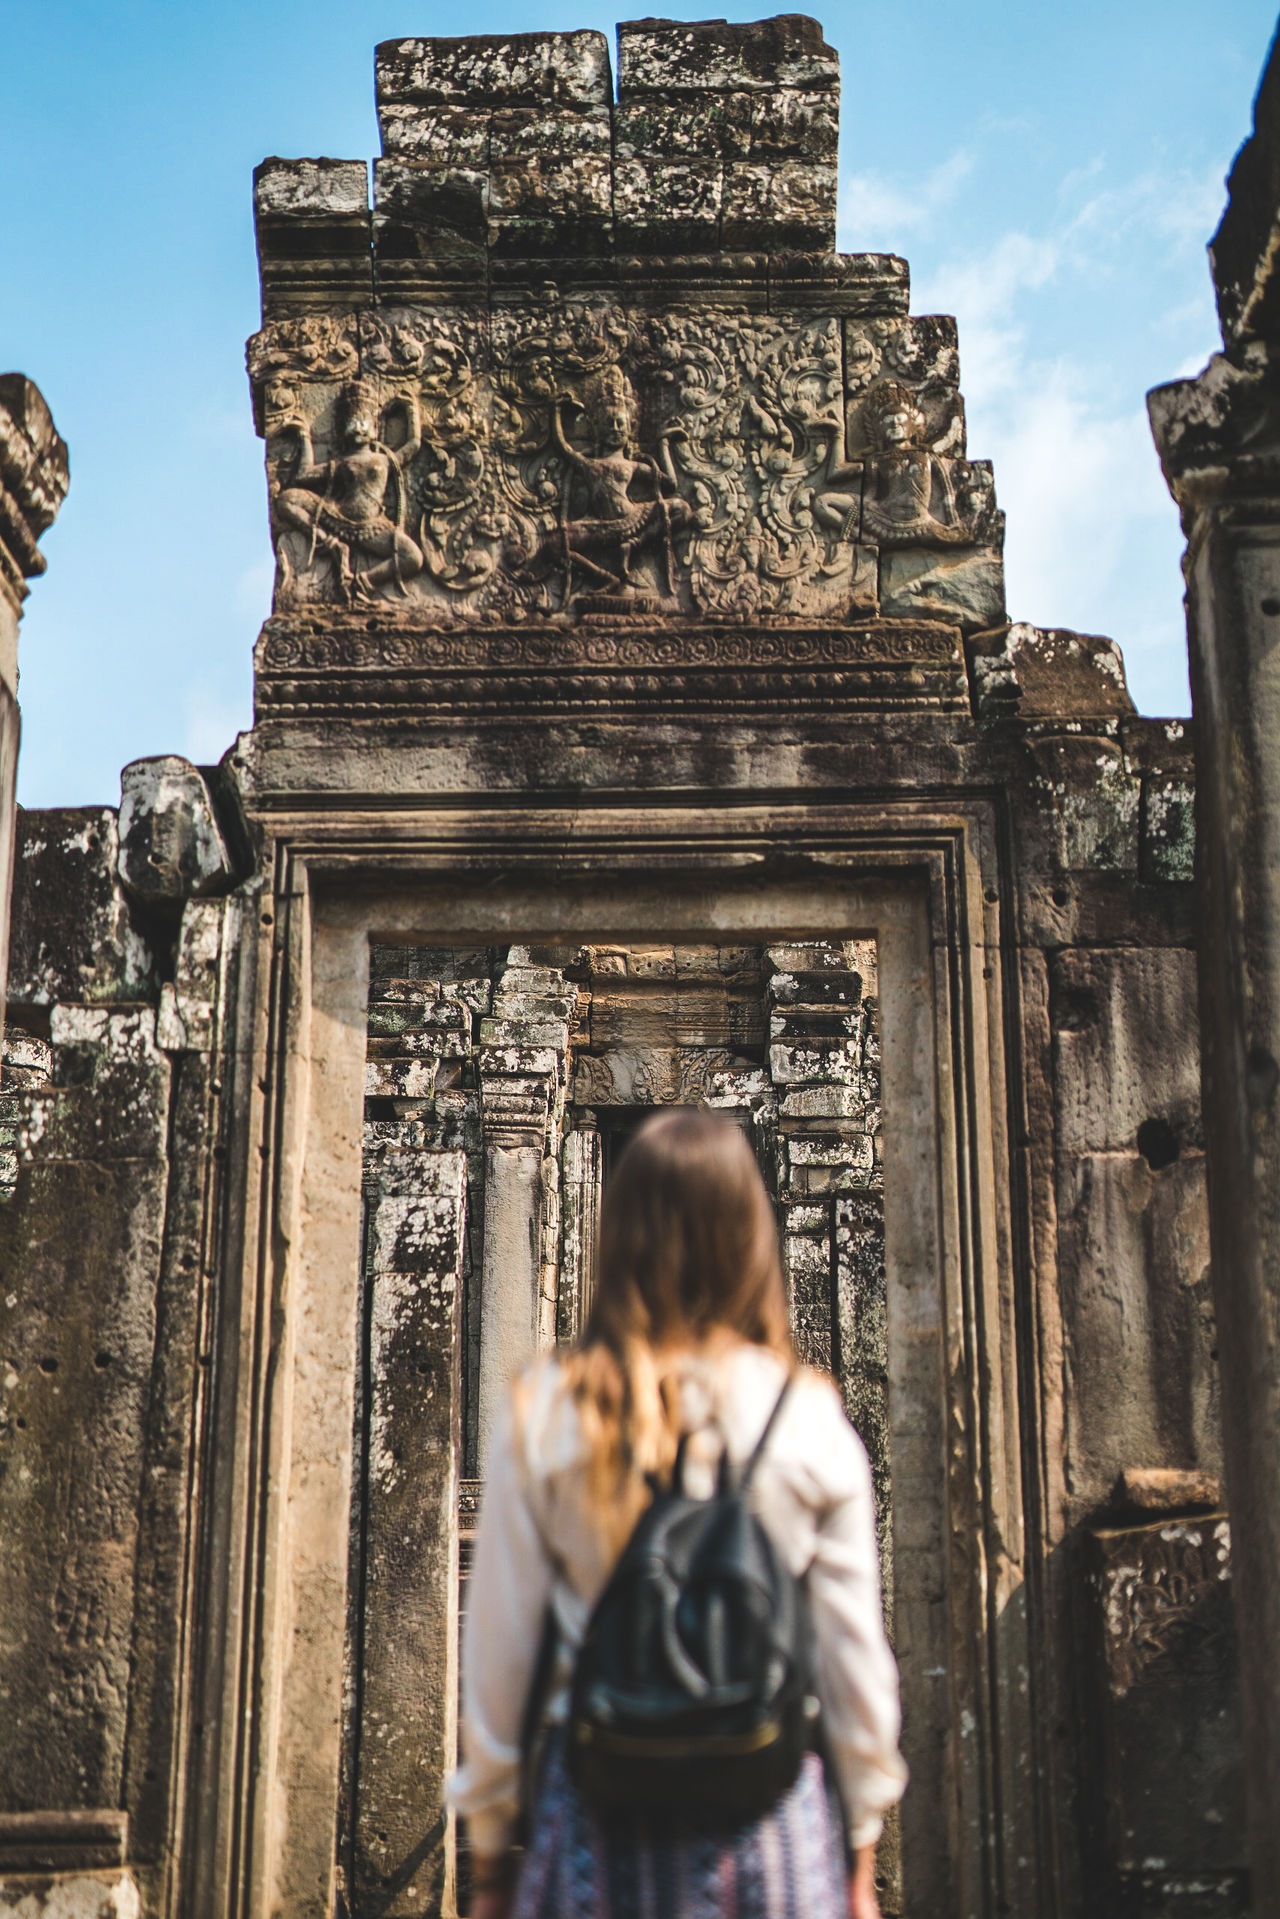 Feels like when the hero is about to enter the temple and find the final boss. Travel Destinations Architecture Built Structure Adult Day Building Exterior Low Angle View Real Life Travel Culture Showcase May Travel Photography ASIA Cambodia Tourism Temple Wonder Of The World Ancient Civilization Spirituality Religion Old Ruin Full Length